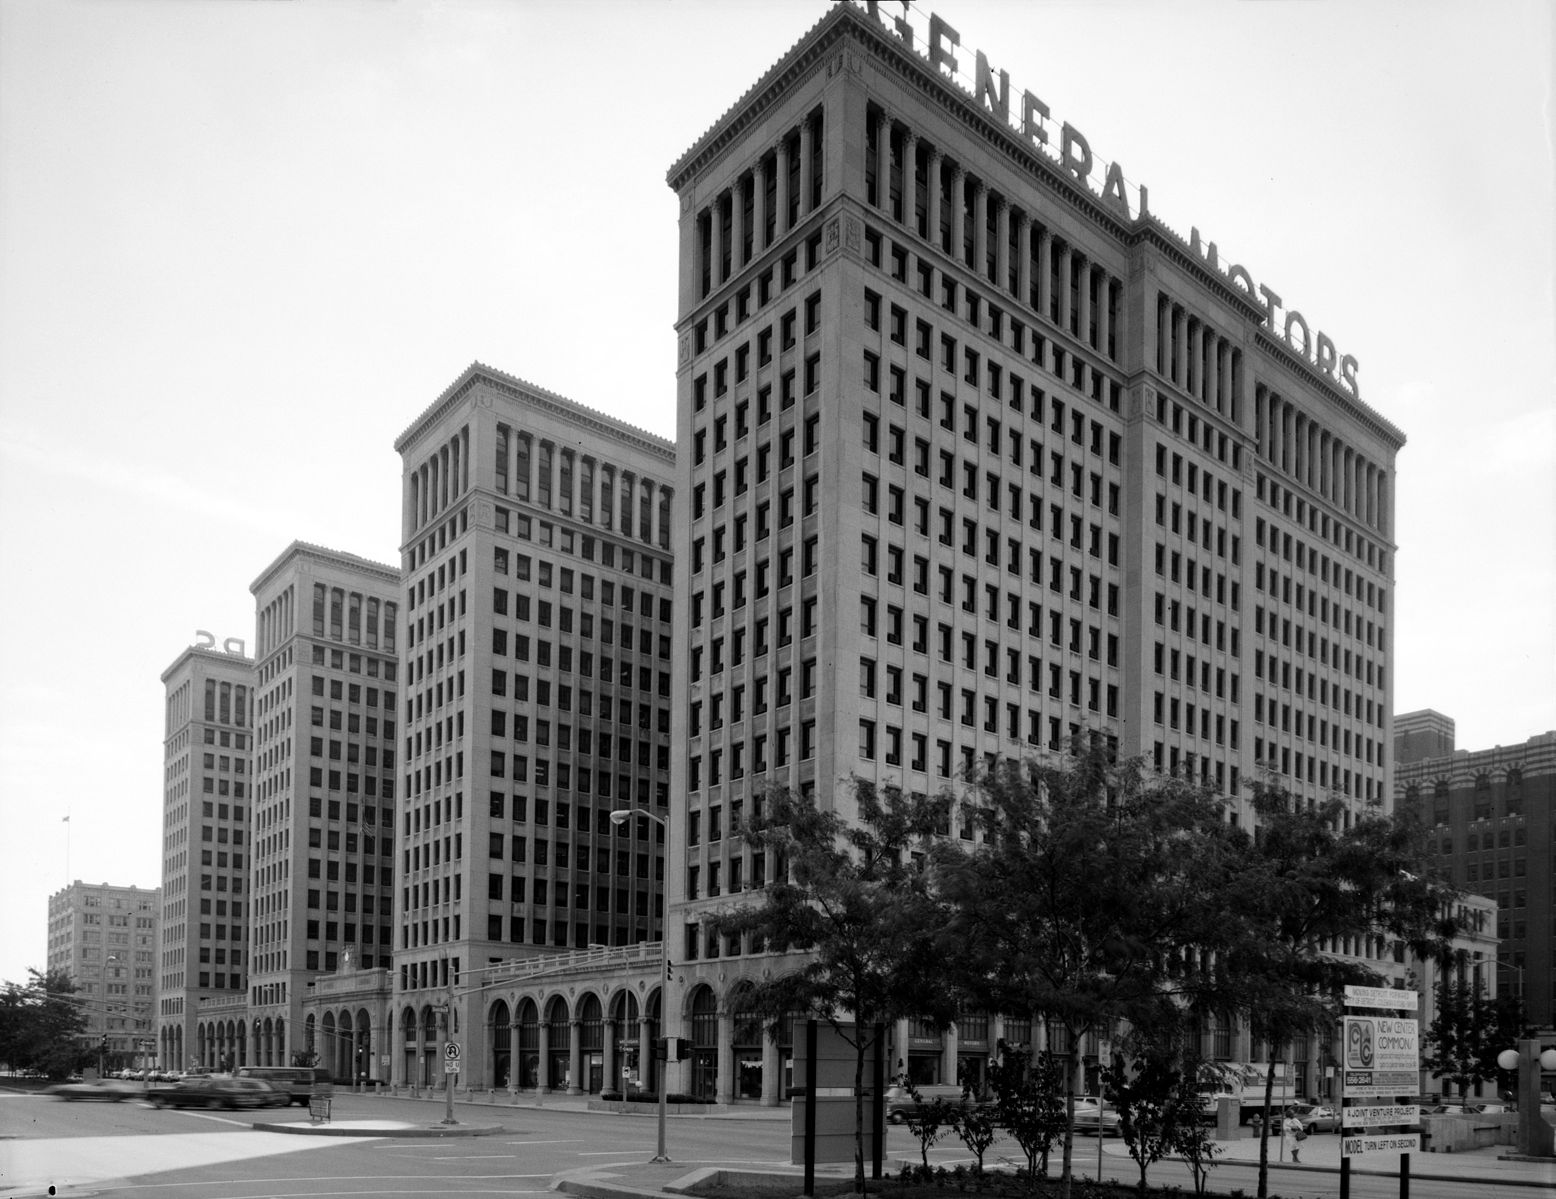 General_Motors_building_089833pv